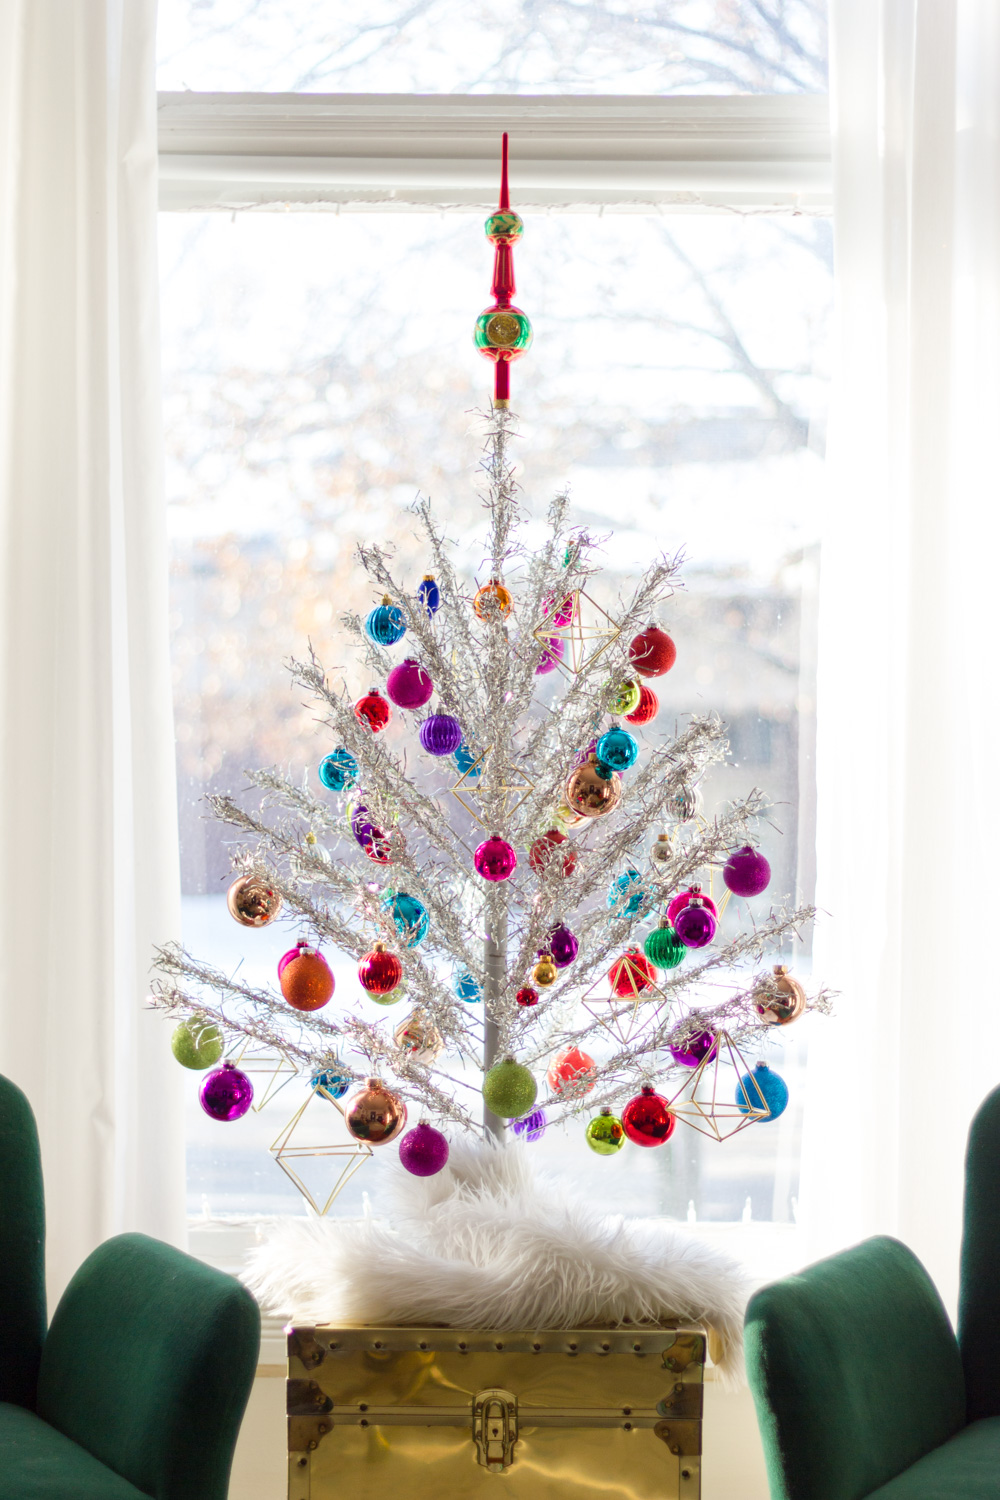 vintage silver aluminum Christmas tree with colorful ornaments, brass trunk, and green velvet chairs